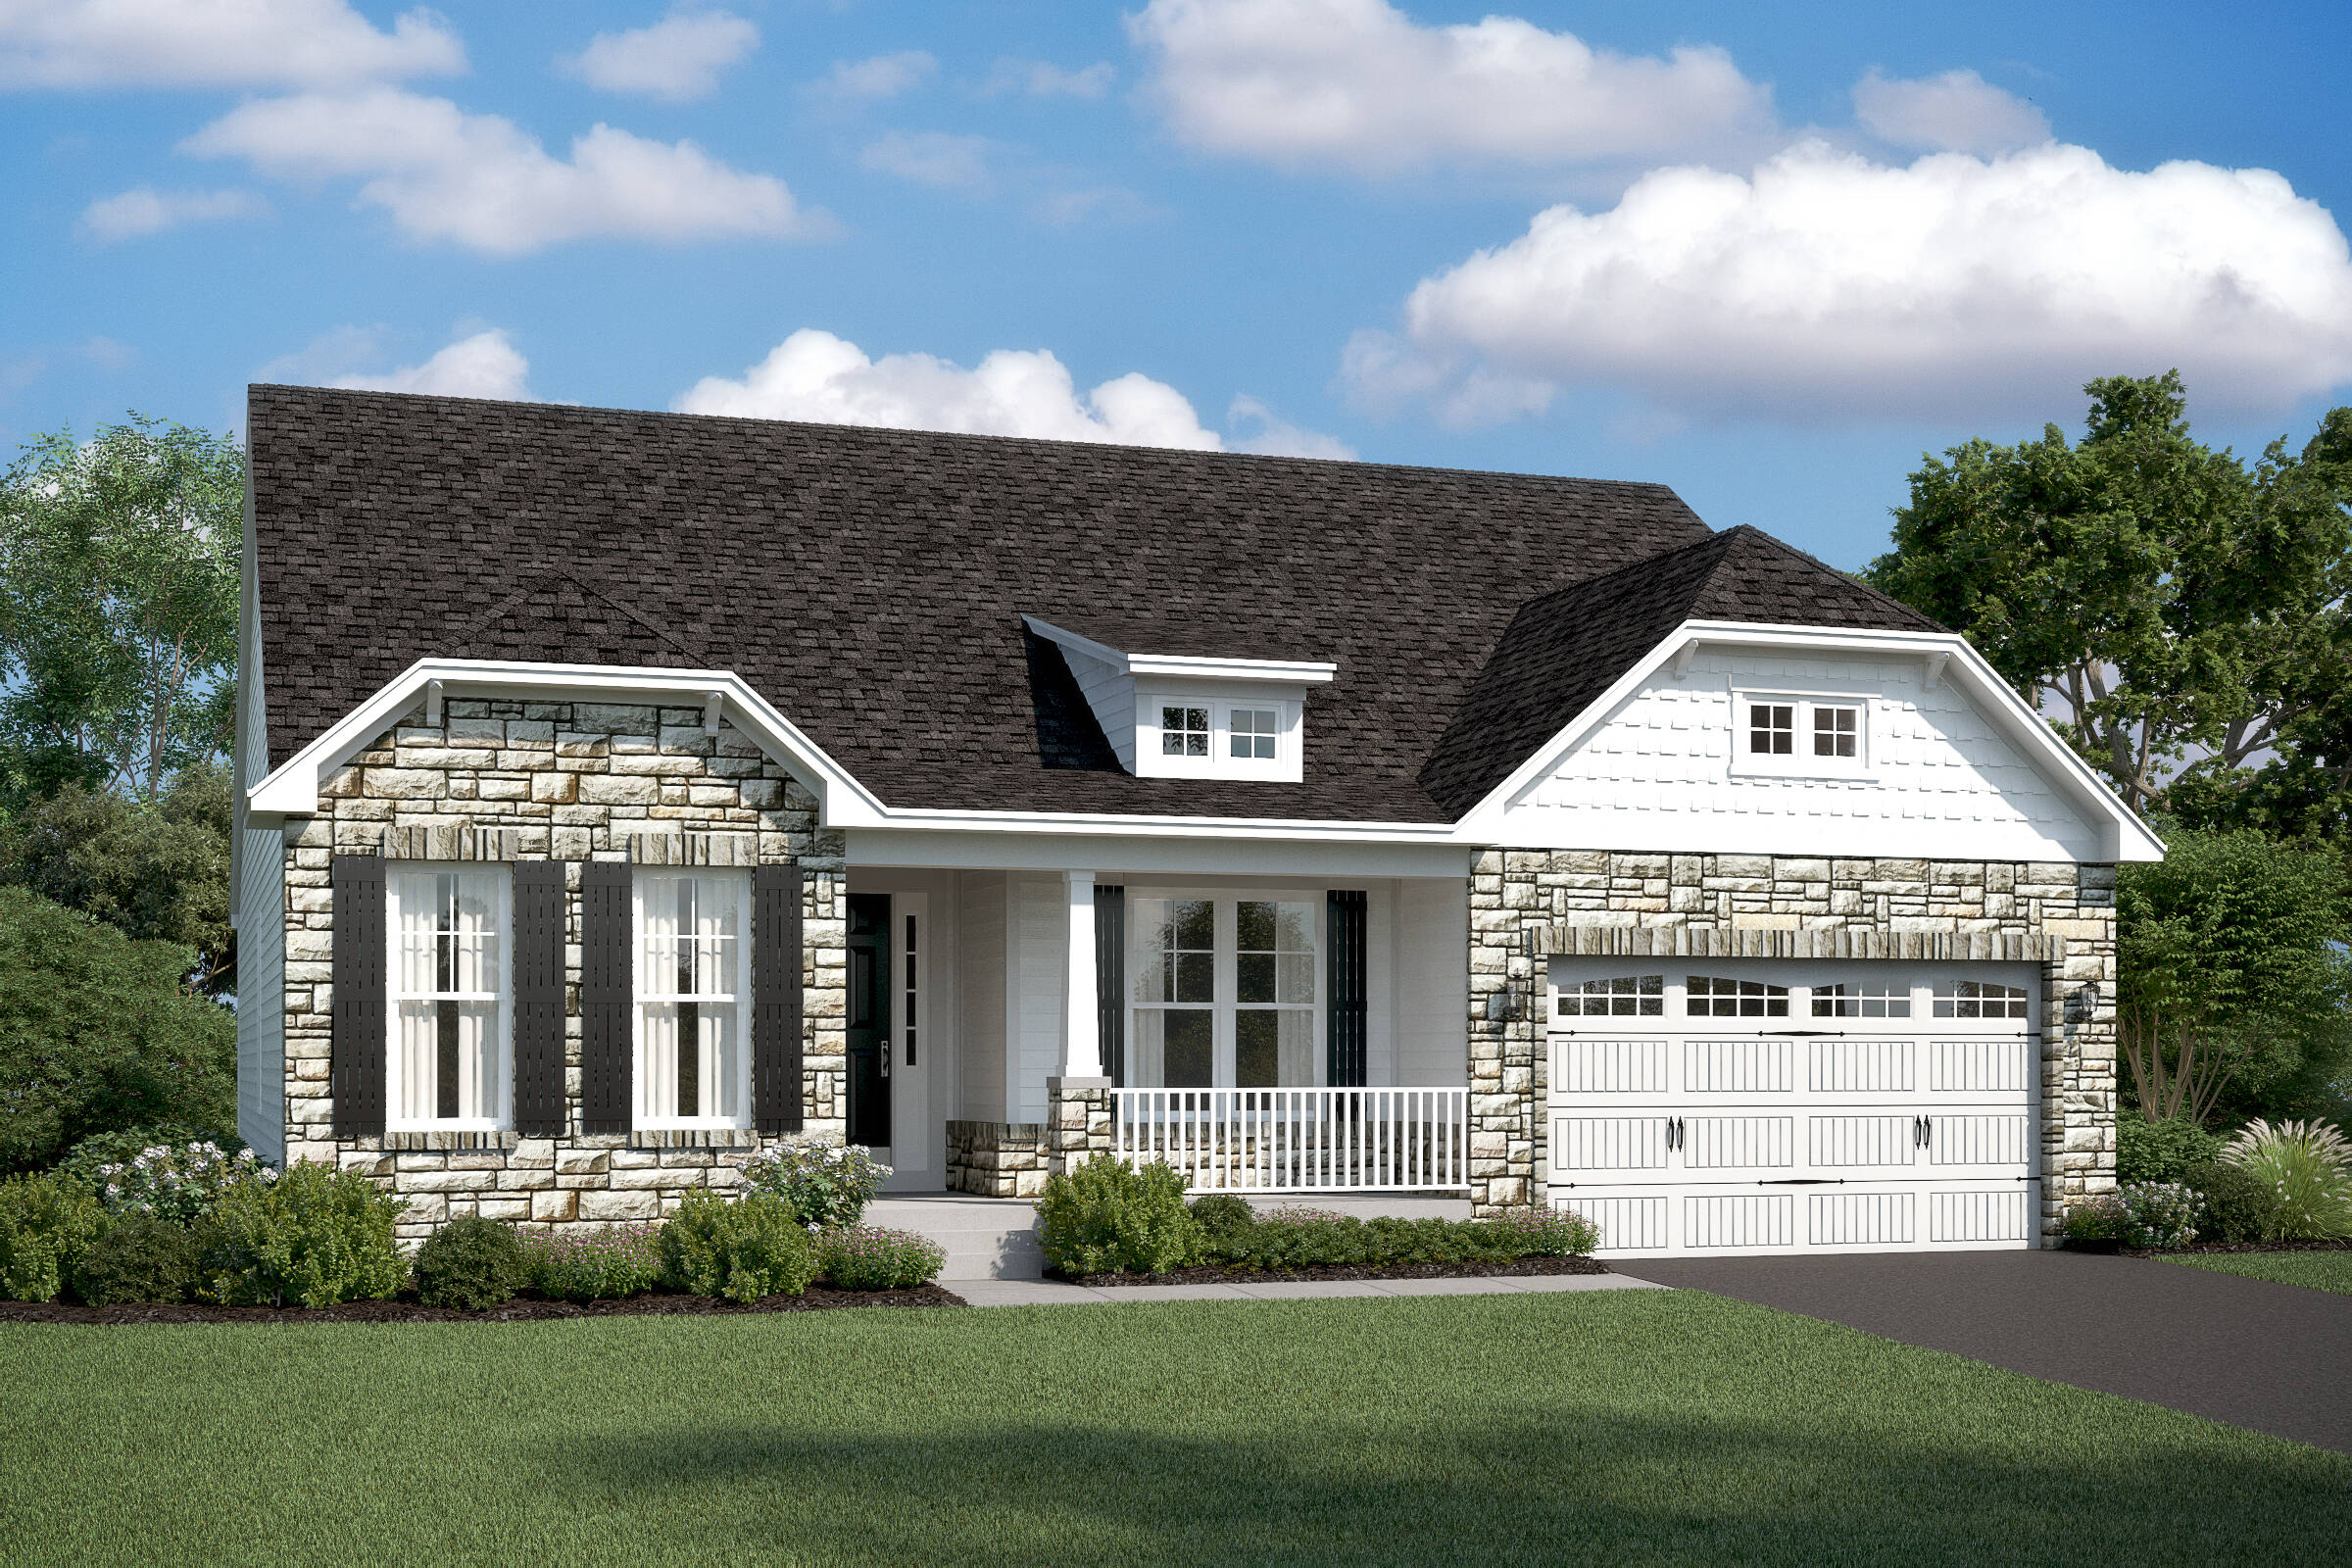 rockford ft new homes at red mill pond in delaware